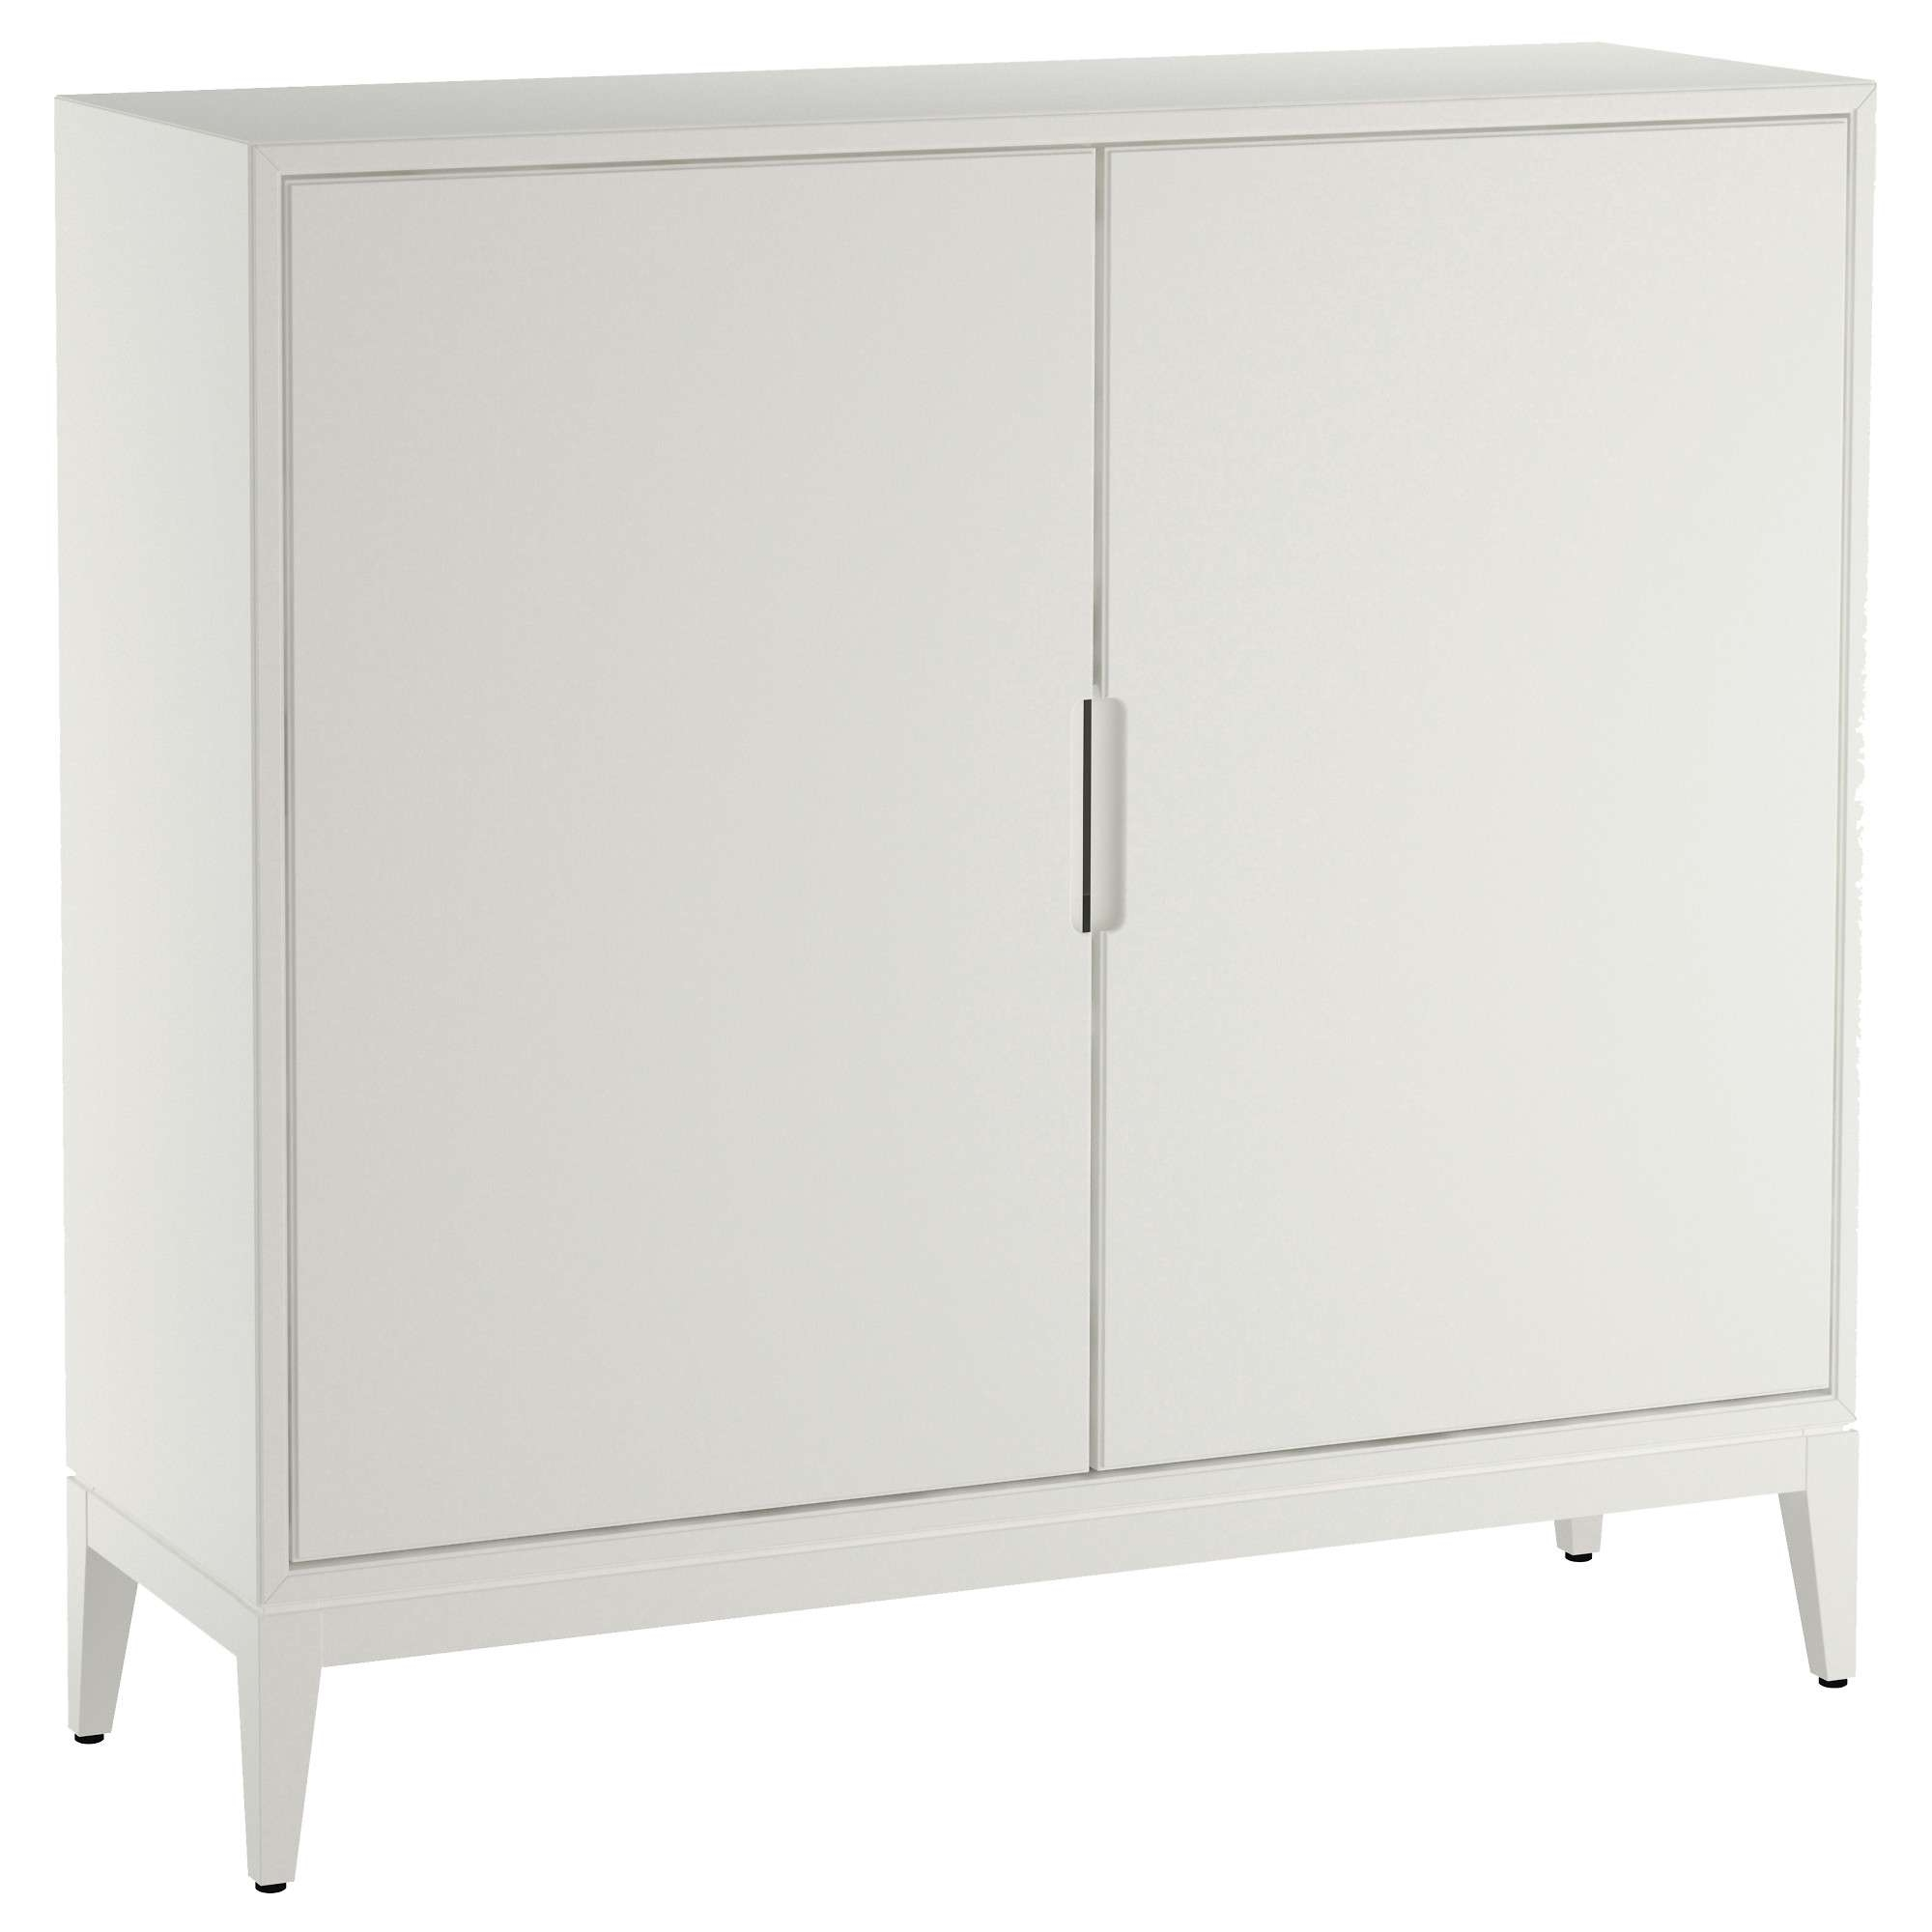 Storage Cabinets & Storage Cupboards | Ikea Regarding White Gloss Ikea Sideboards (View 20 of 20)